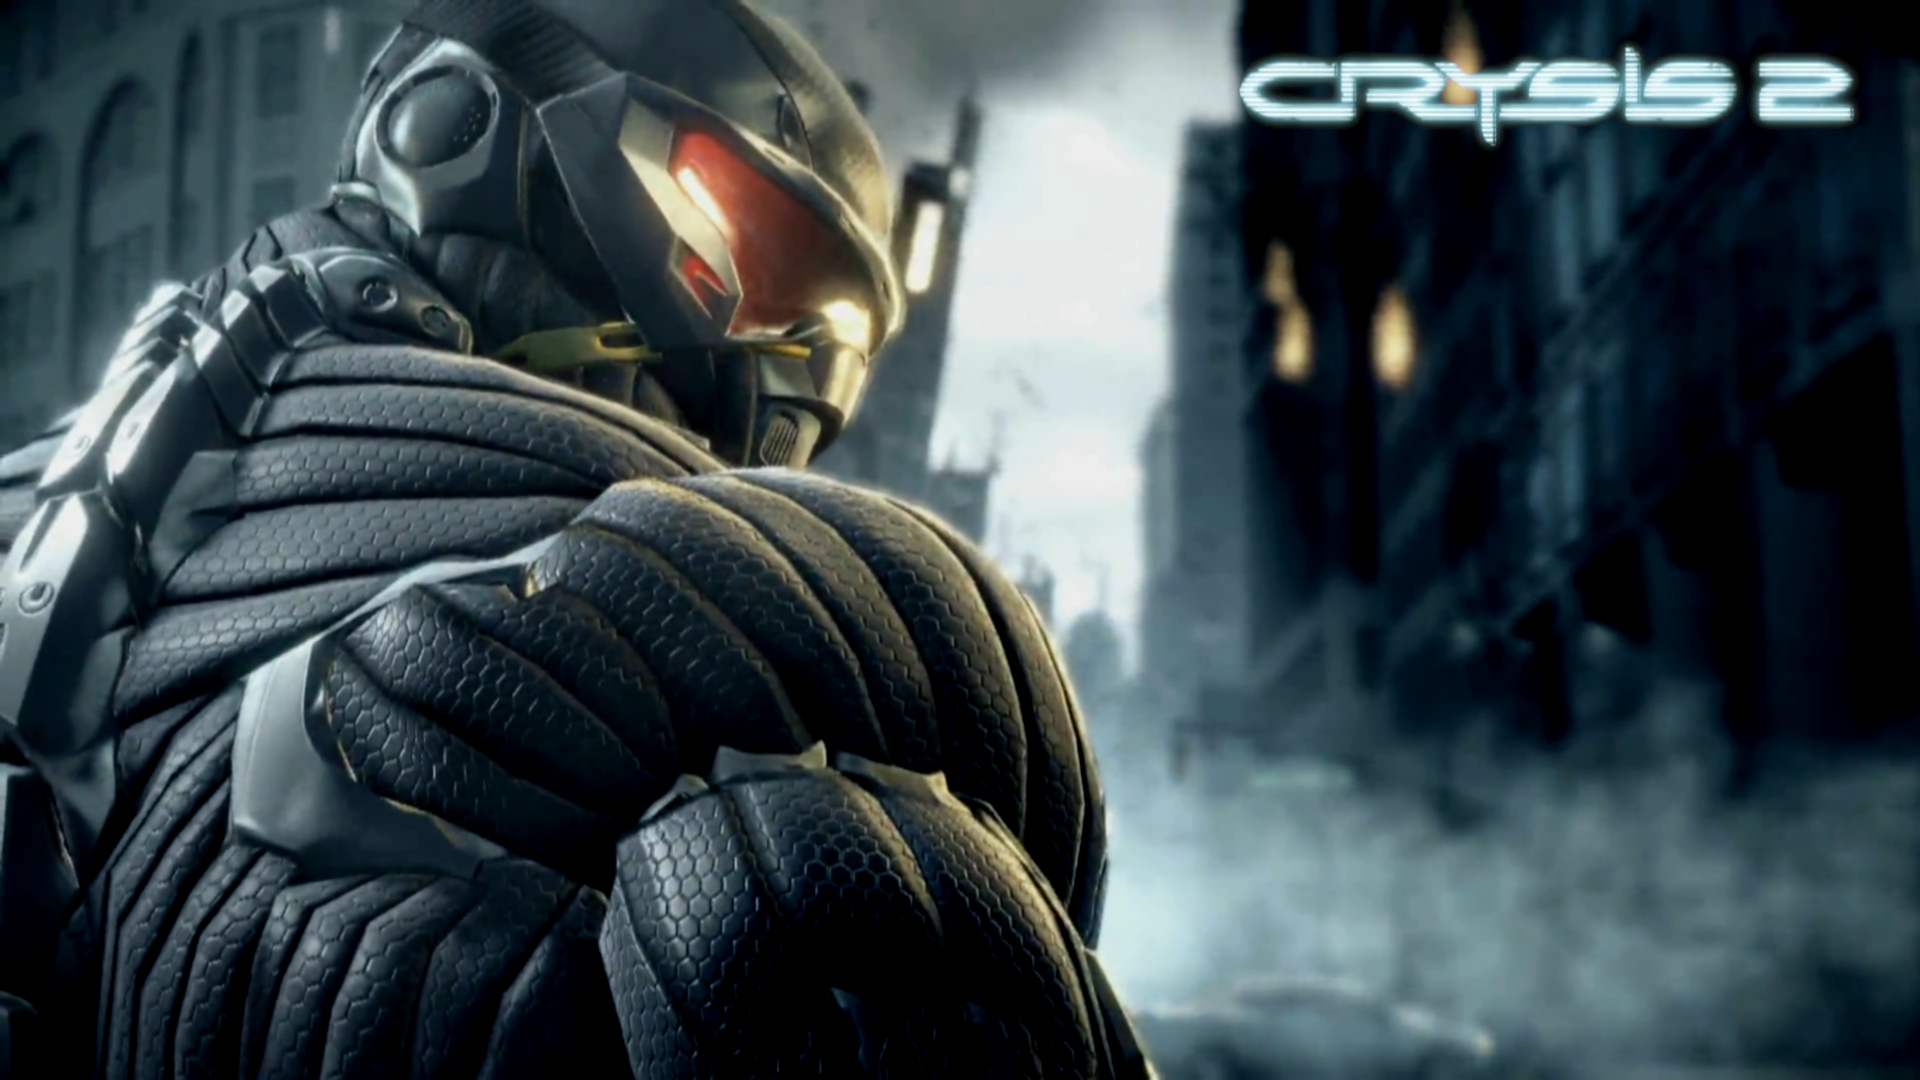 gamer background wallpapers crysis 2 wallpaper superhero hd 1920jpg 1920x1080